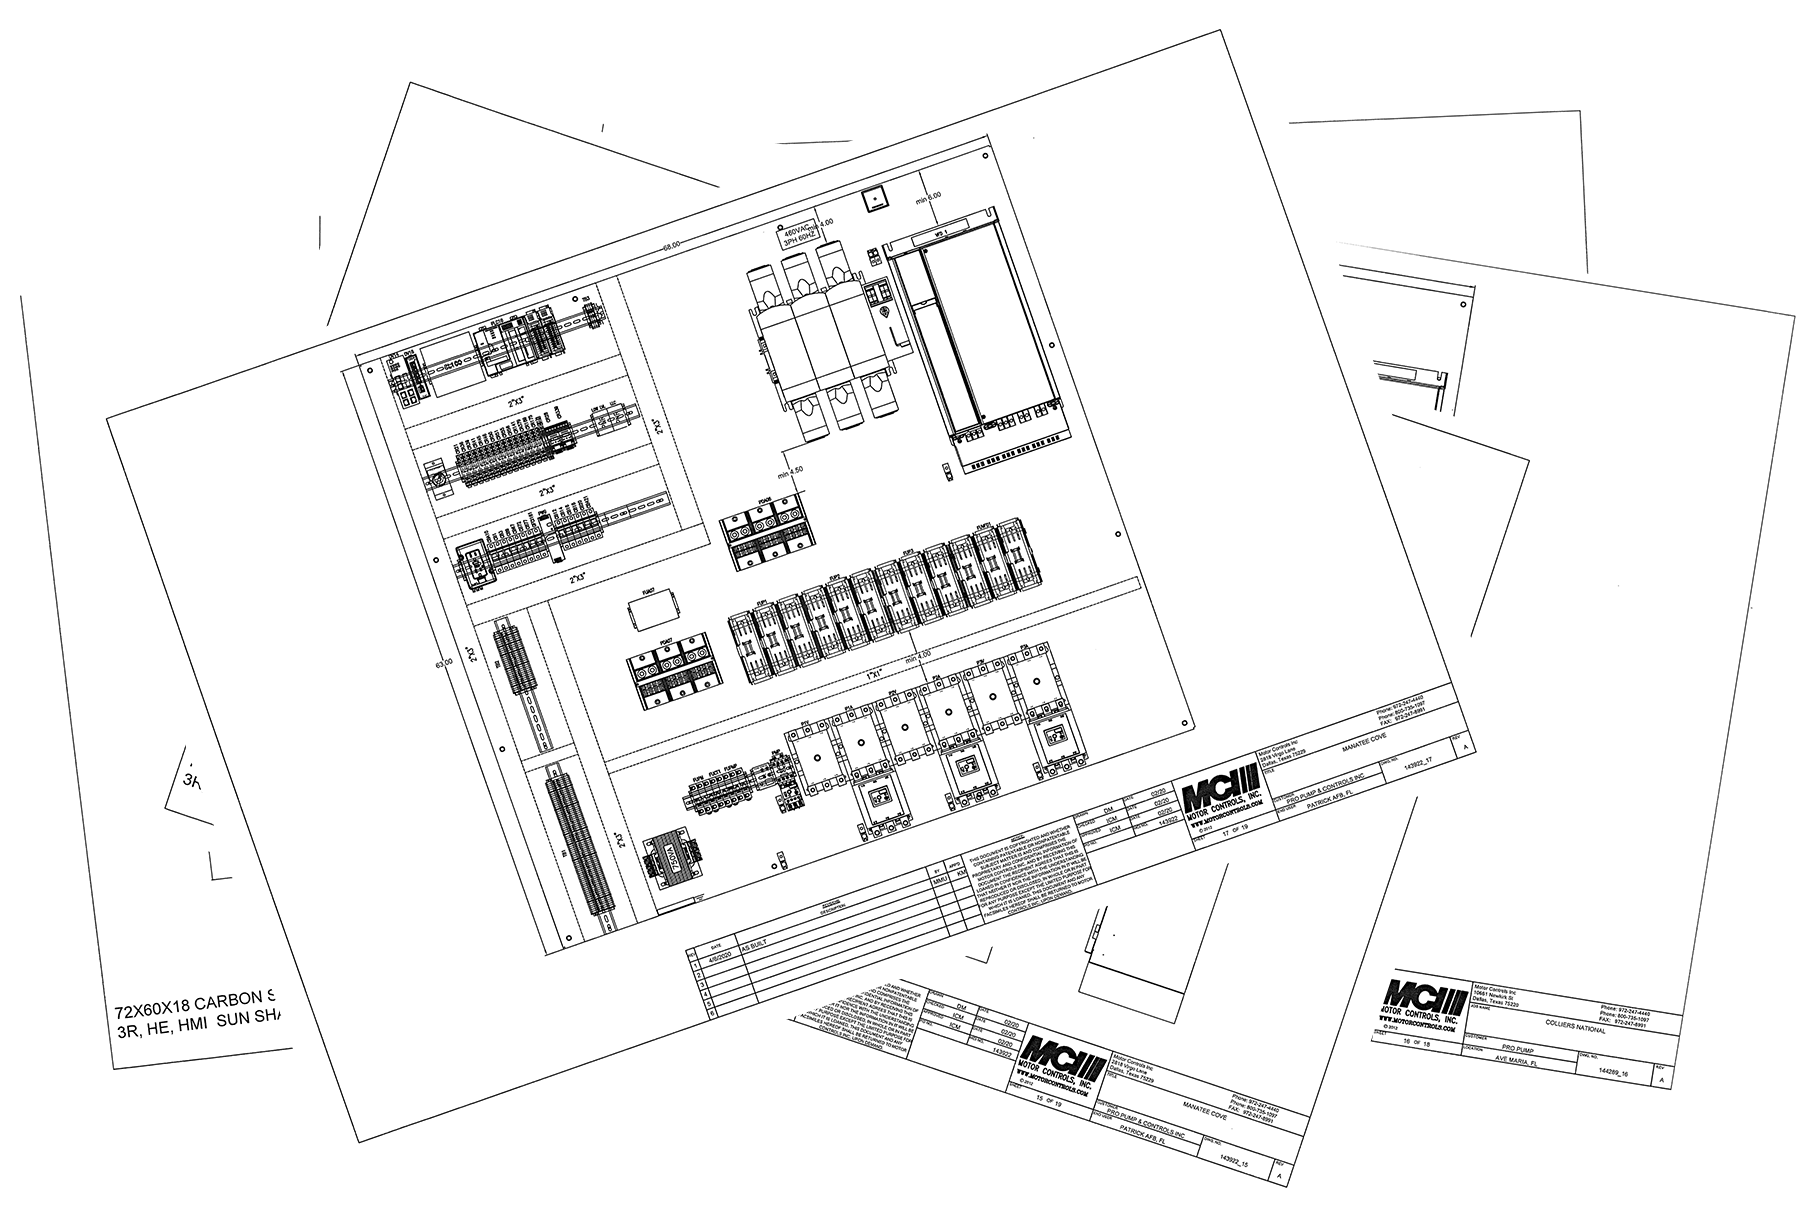 Control panel schematic drawings